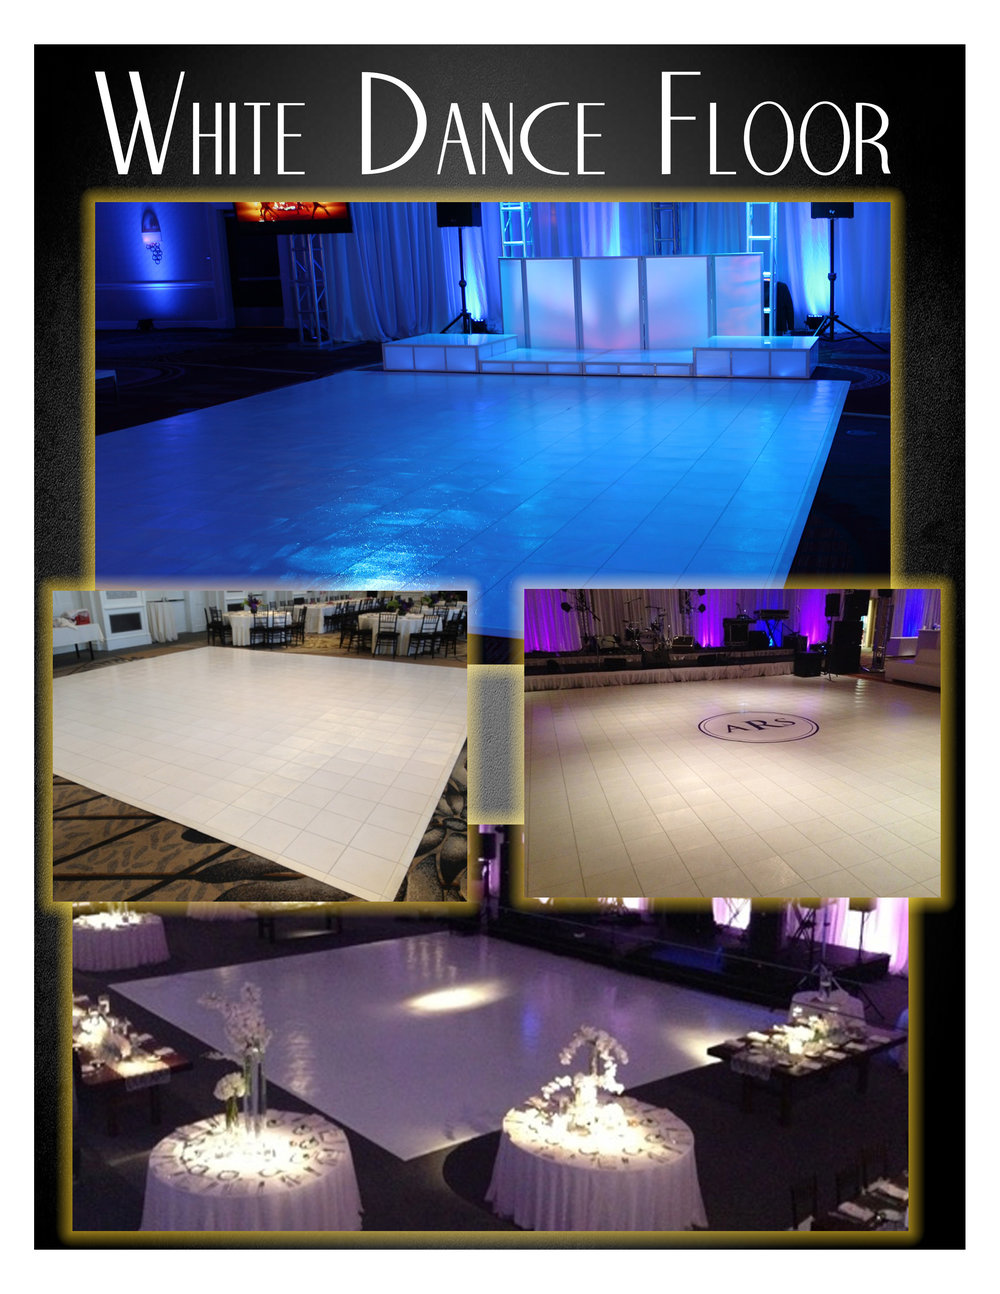 004-P4_White Dance Floor.jpg